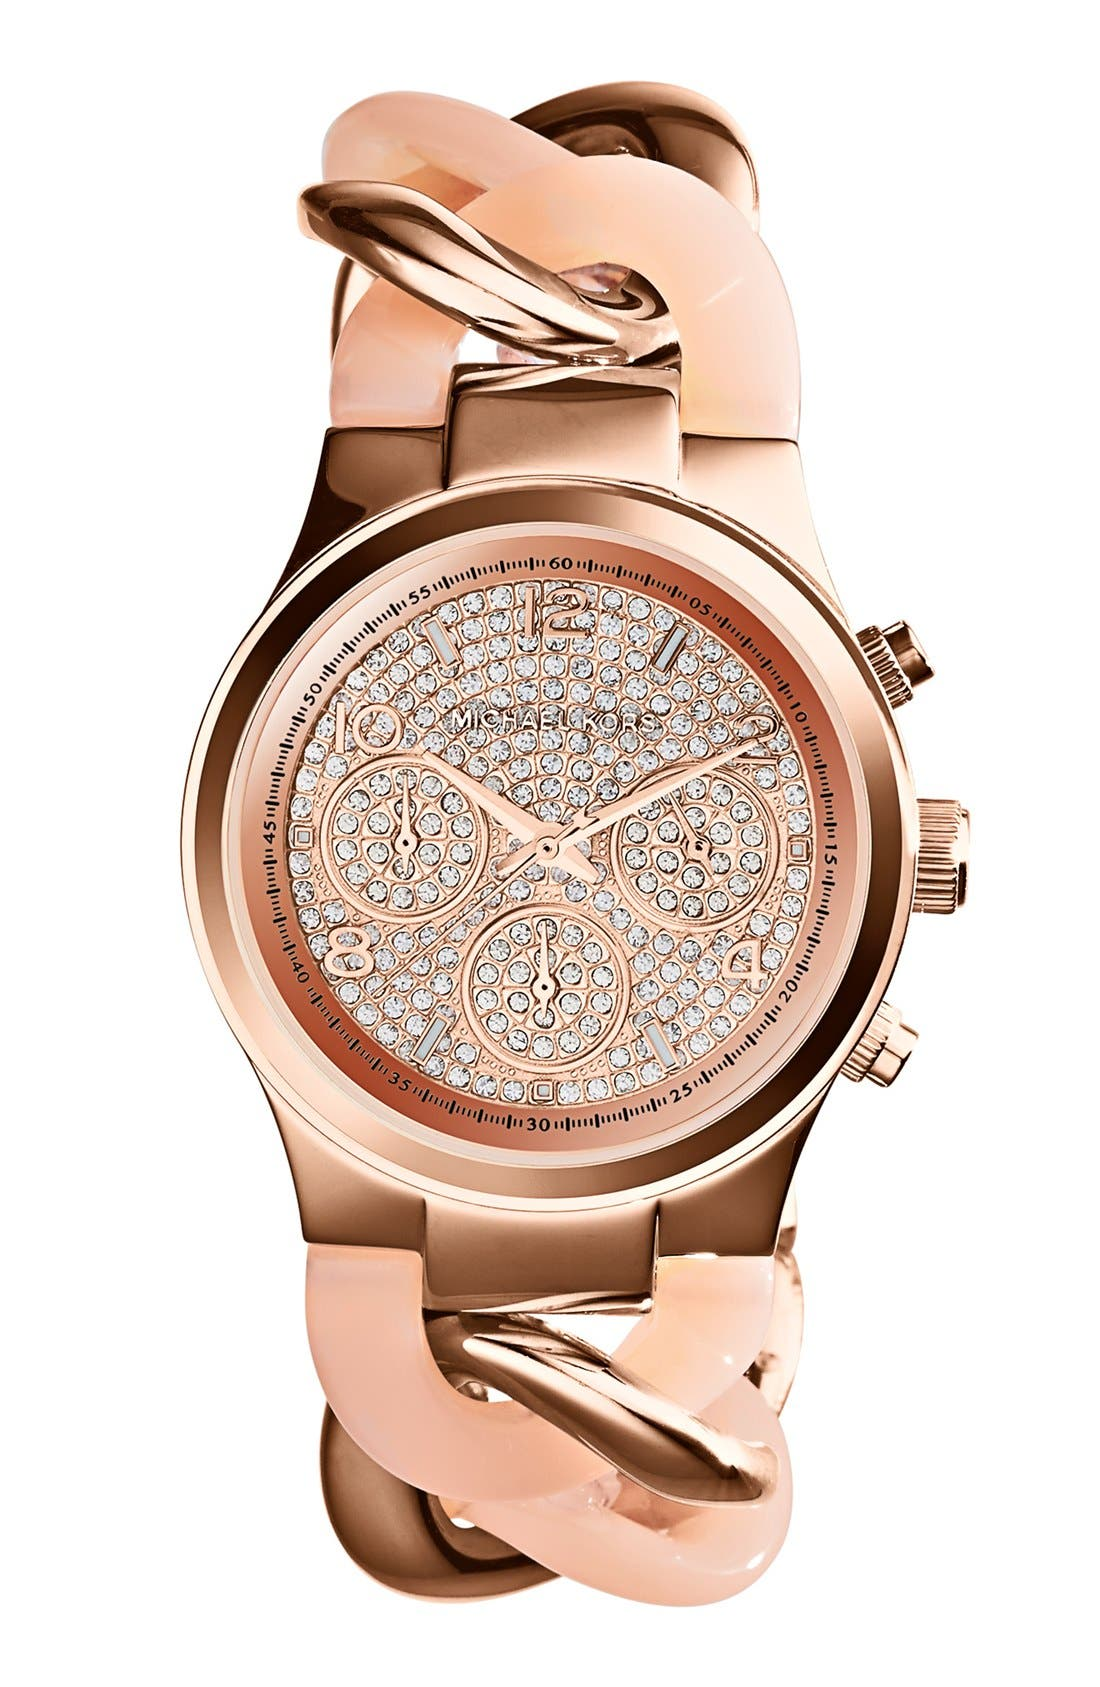 Alternate Image 1 Selected - Michael Kors 'Runway' Pavé Dial Chronograph Link Bracelet Watch, 38mm